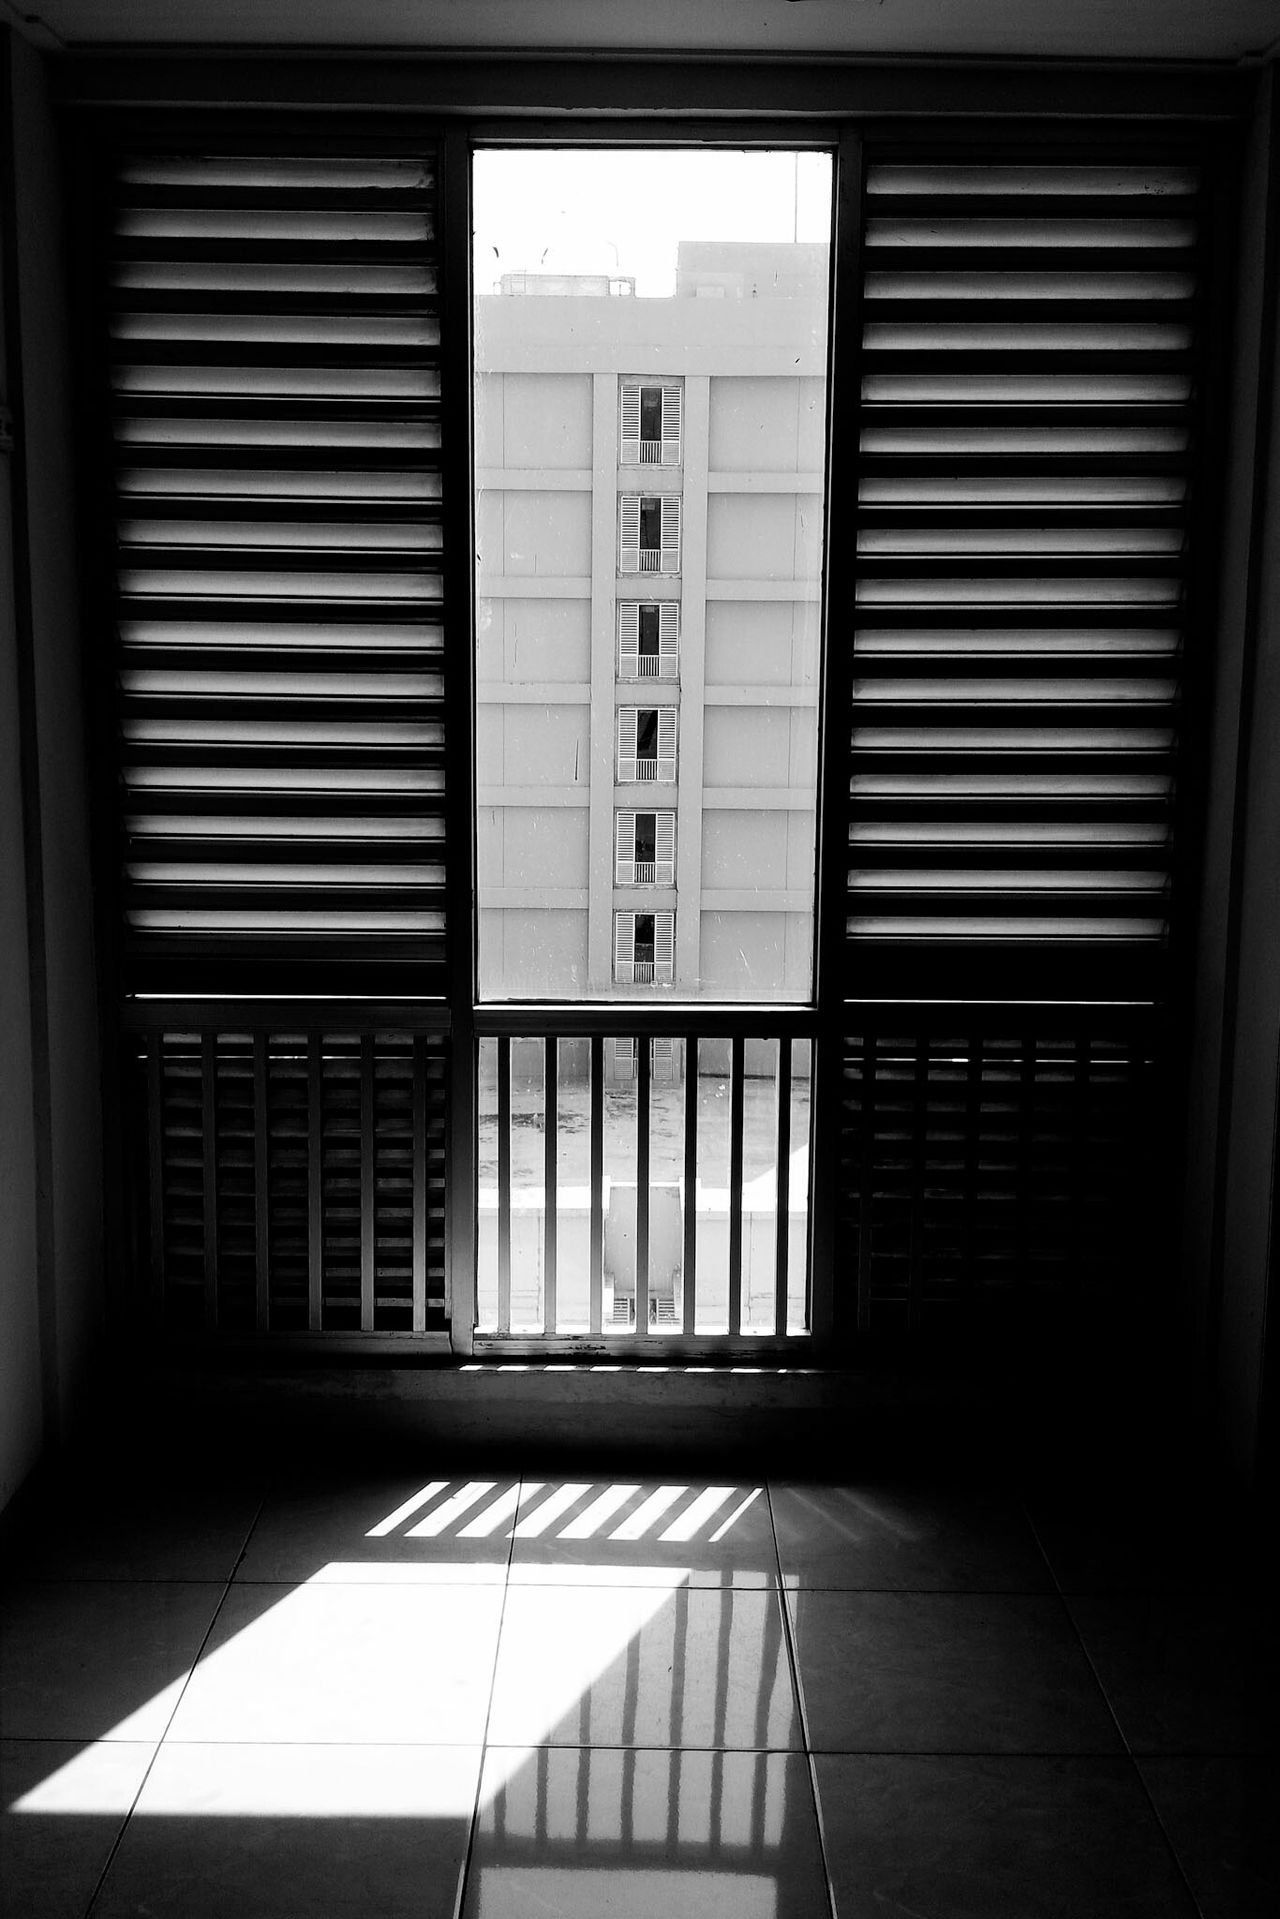 Built Structure No People Indoors  Day WindowsPhonePhotography Windows View Windowlight Windows And Doors Shadows & Light Shadows And Silhouettes Shadows And Sunlight EyeEm Best Shots Best EyeEm Shot Eyeemmarket Lines And Shapes EyeEmBestEdits EyeEm Best Edits Eyeemphotography Art Is Everywhere Indoor Photography Backgrounds Architecture Abstract Best Shots EyeEm Pattern